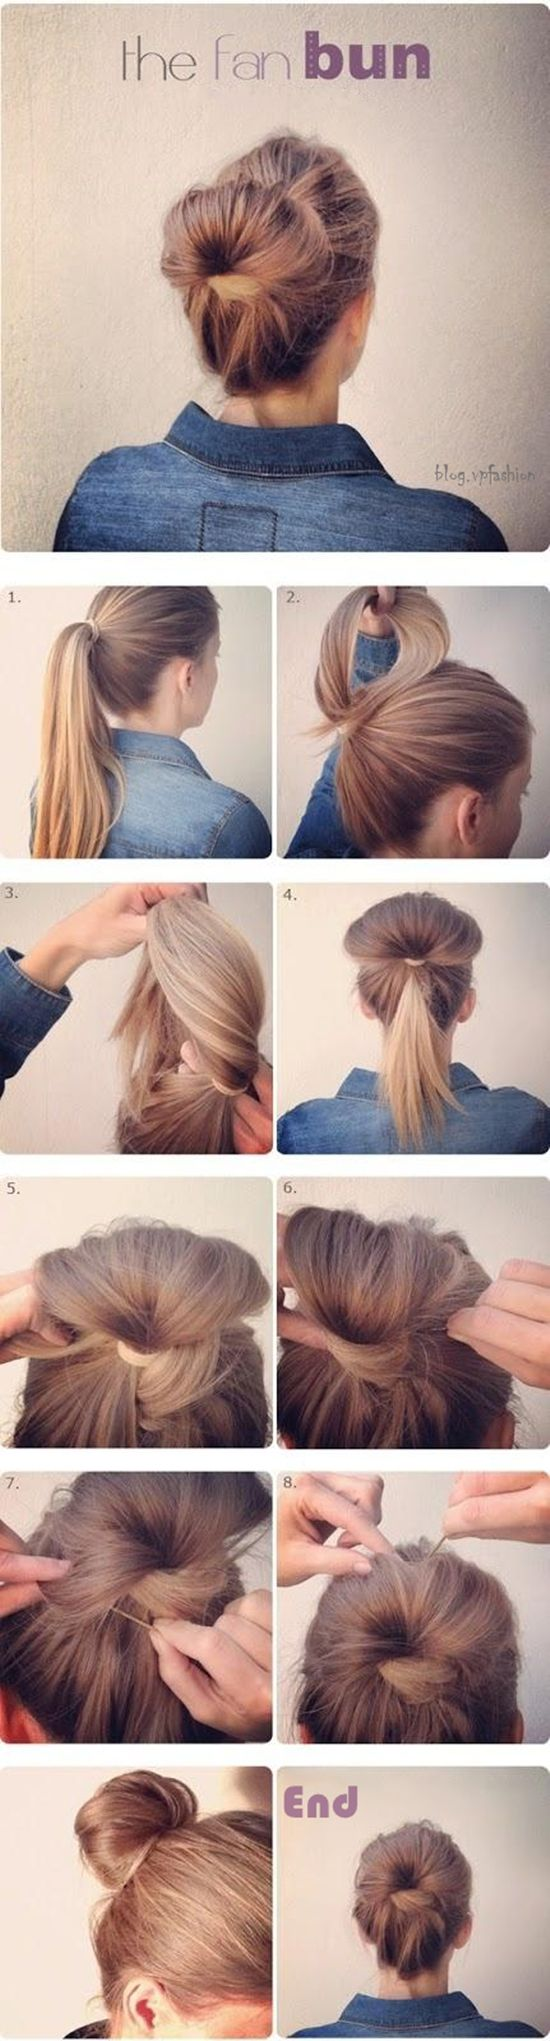 hot hairstyles you can try at home in autumn hair buns